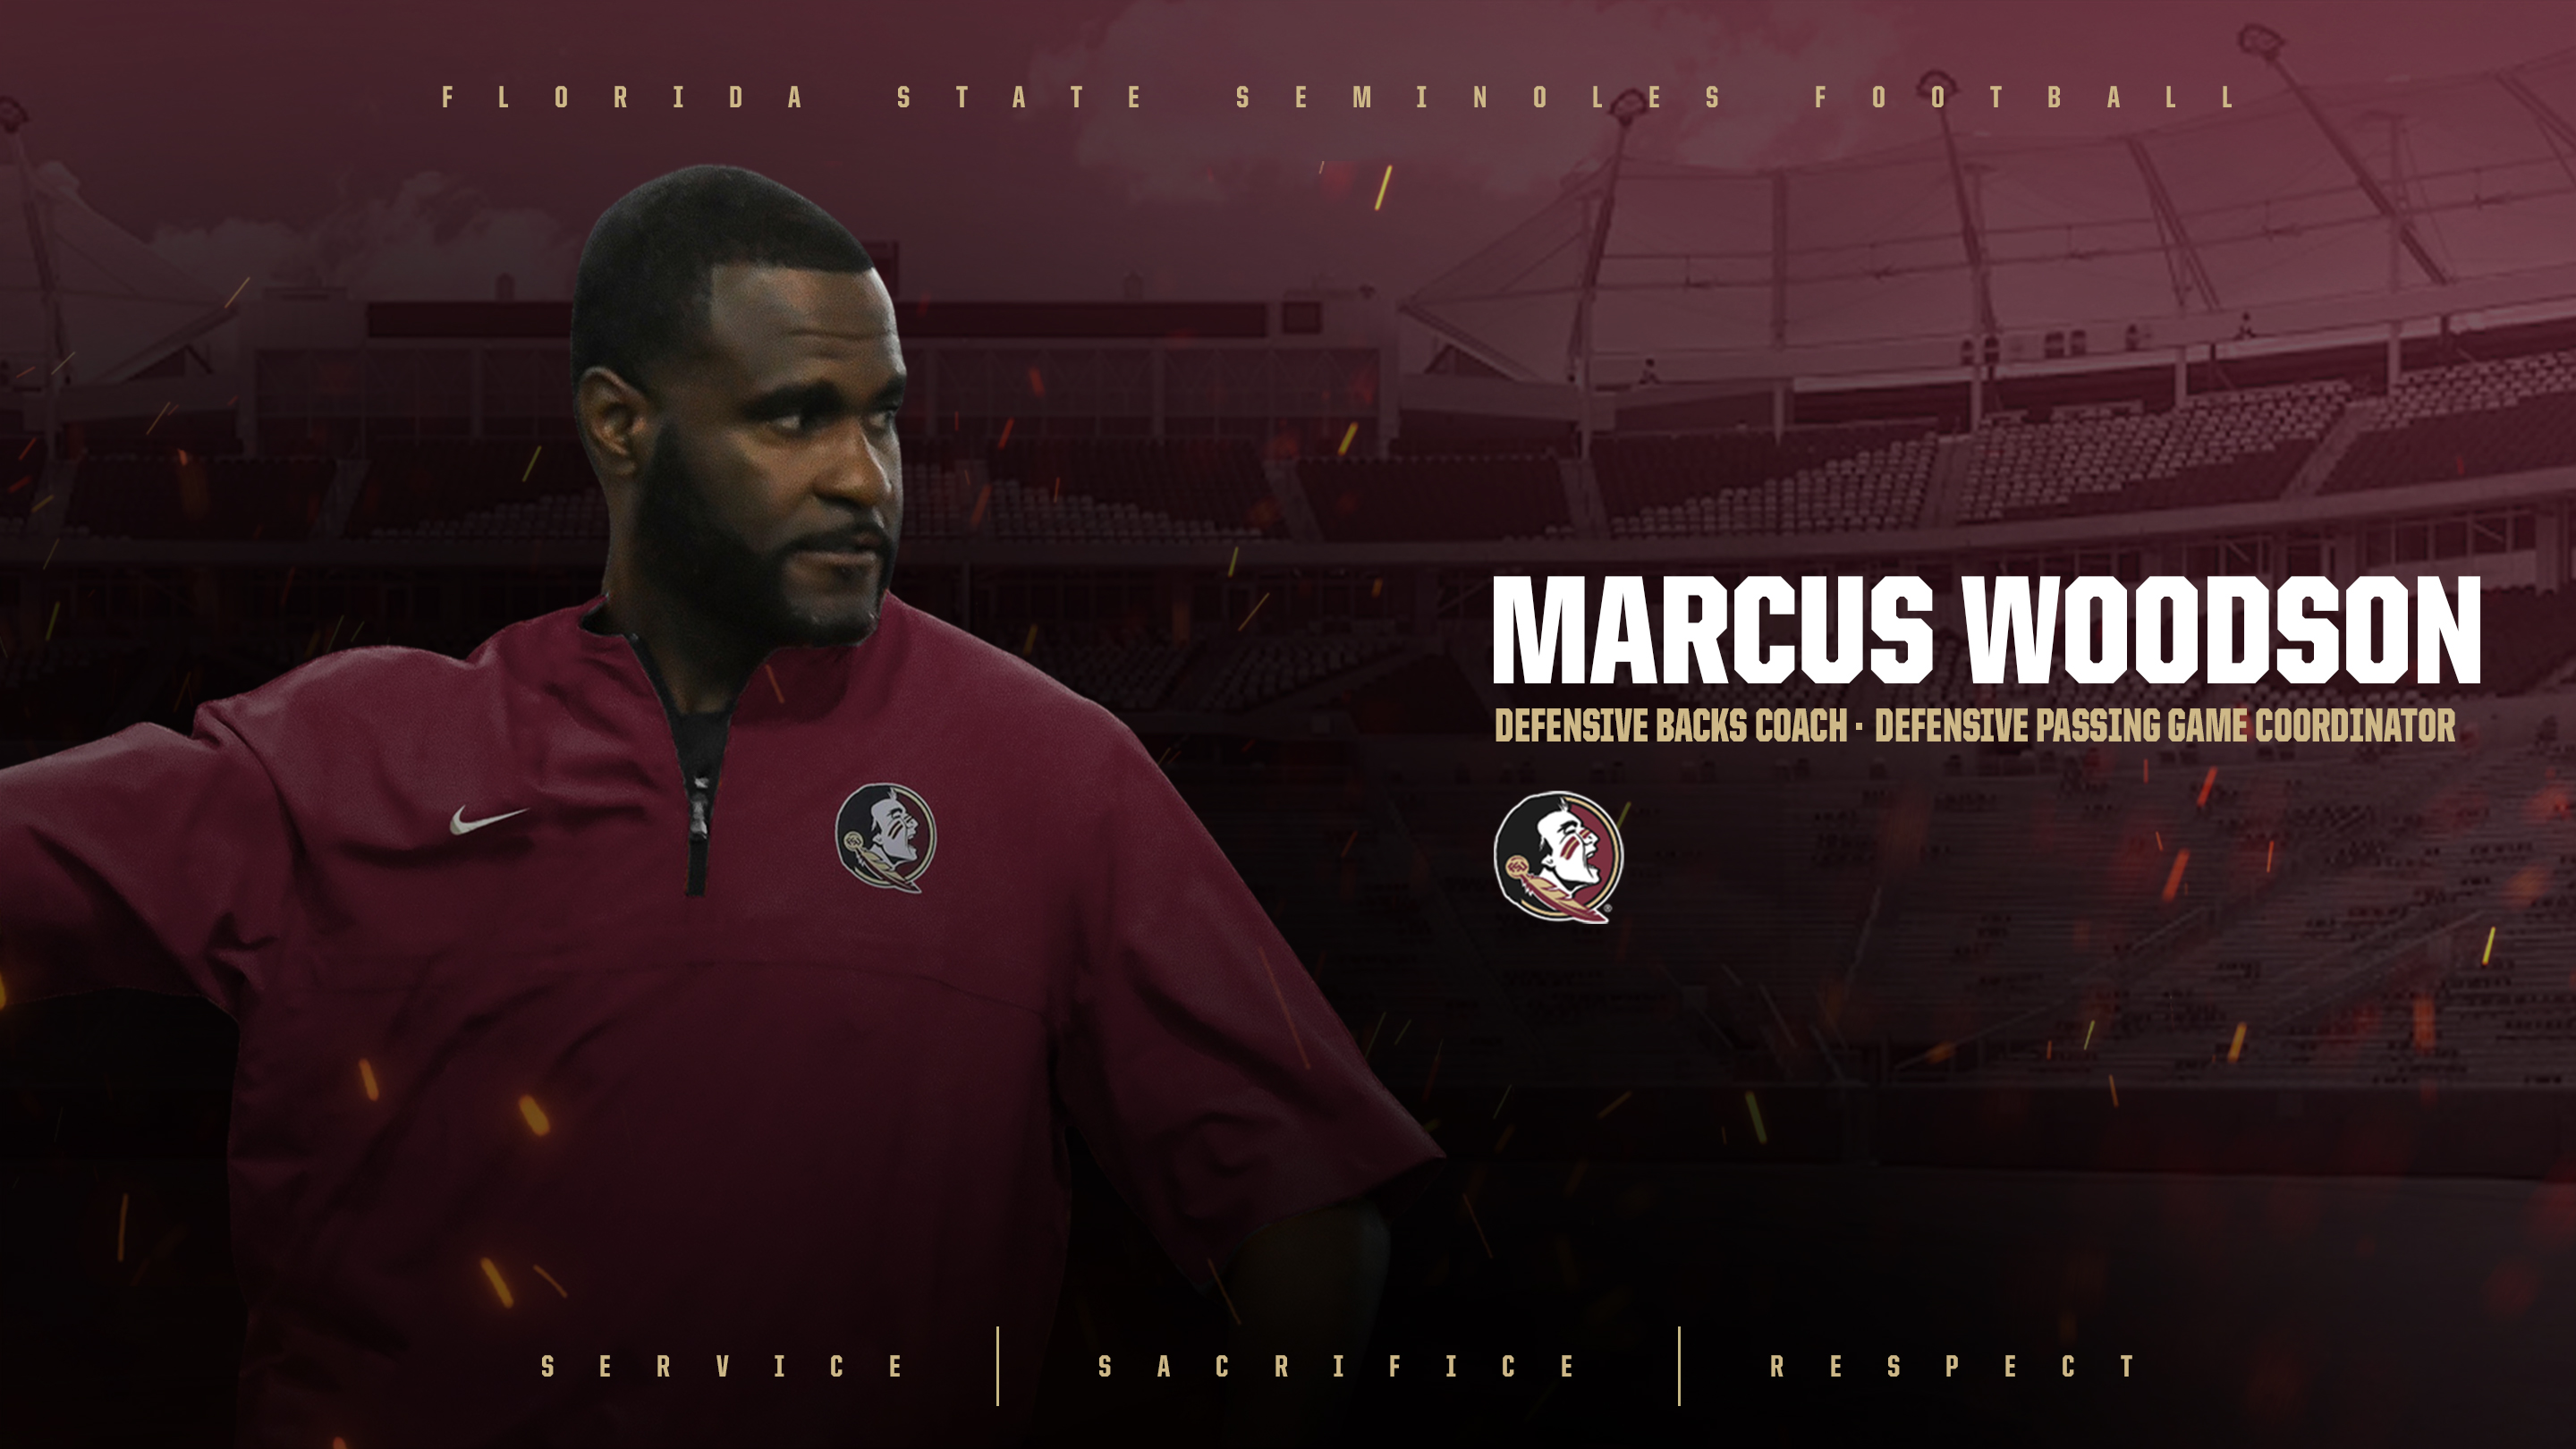 Marcus Woodson Named Defensive Backs Coach, Defensive Passing Game Coordinator